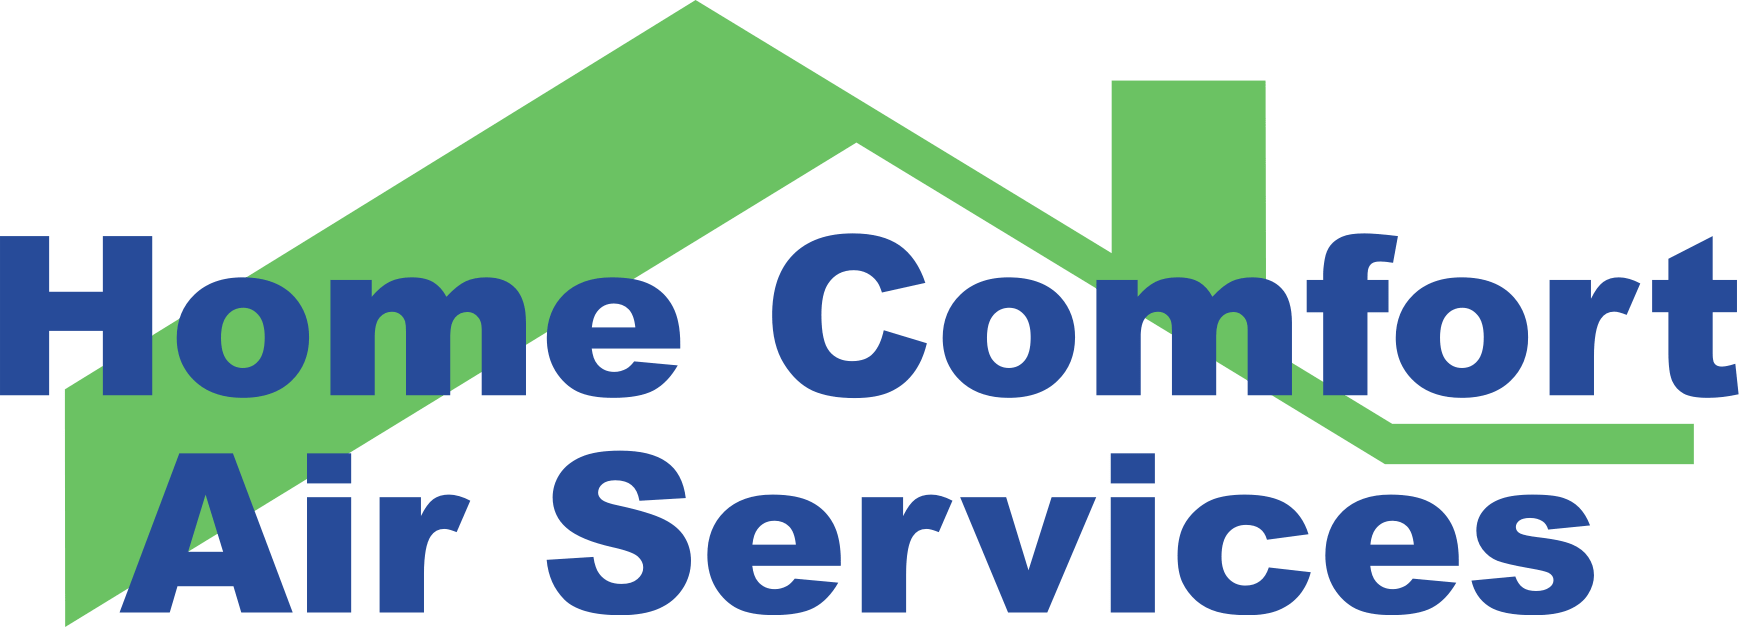 See what makes Home Comfort Air Services your number one choice for Ductless Mini Split repair in Takoma Park MD.